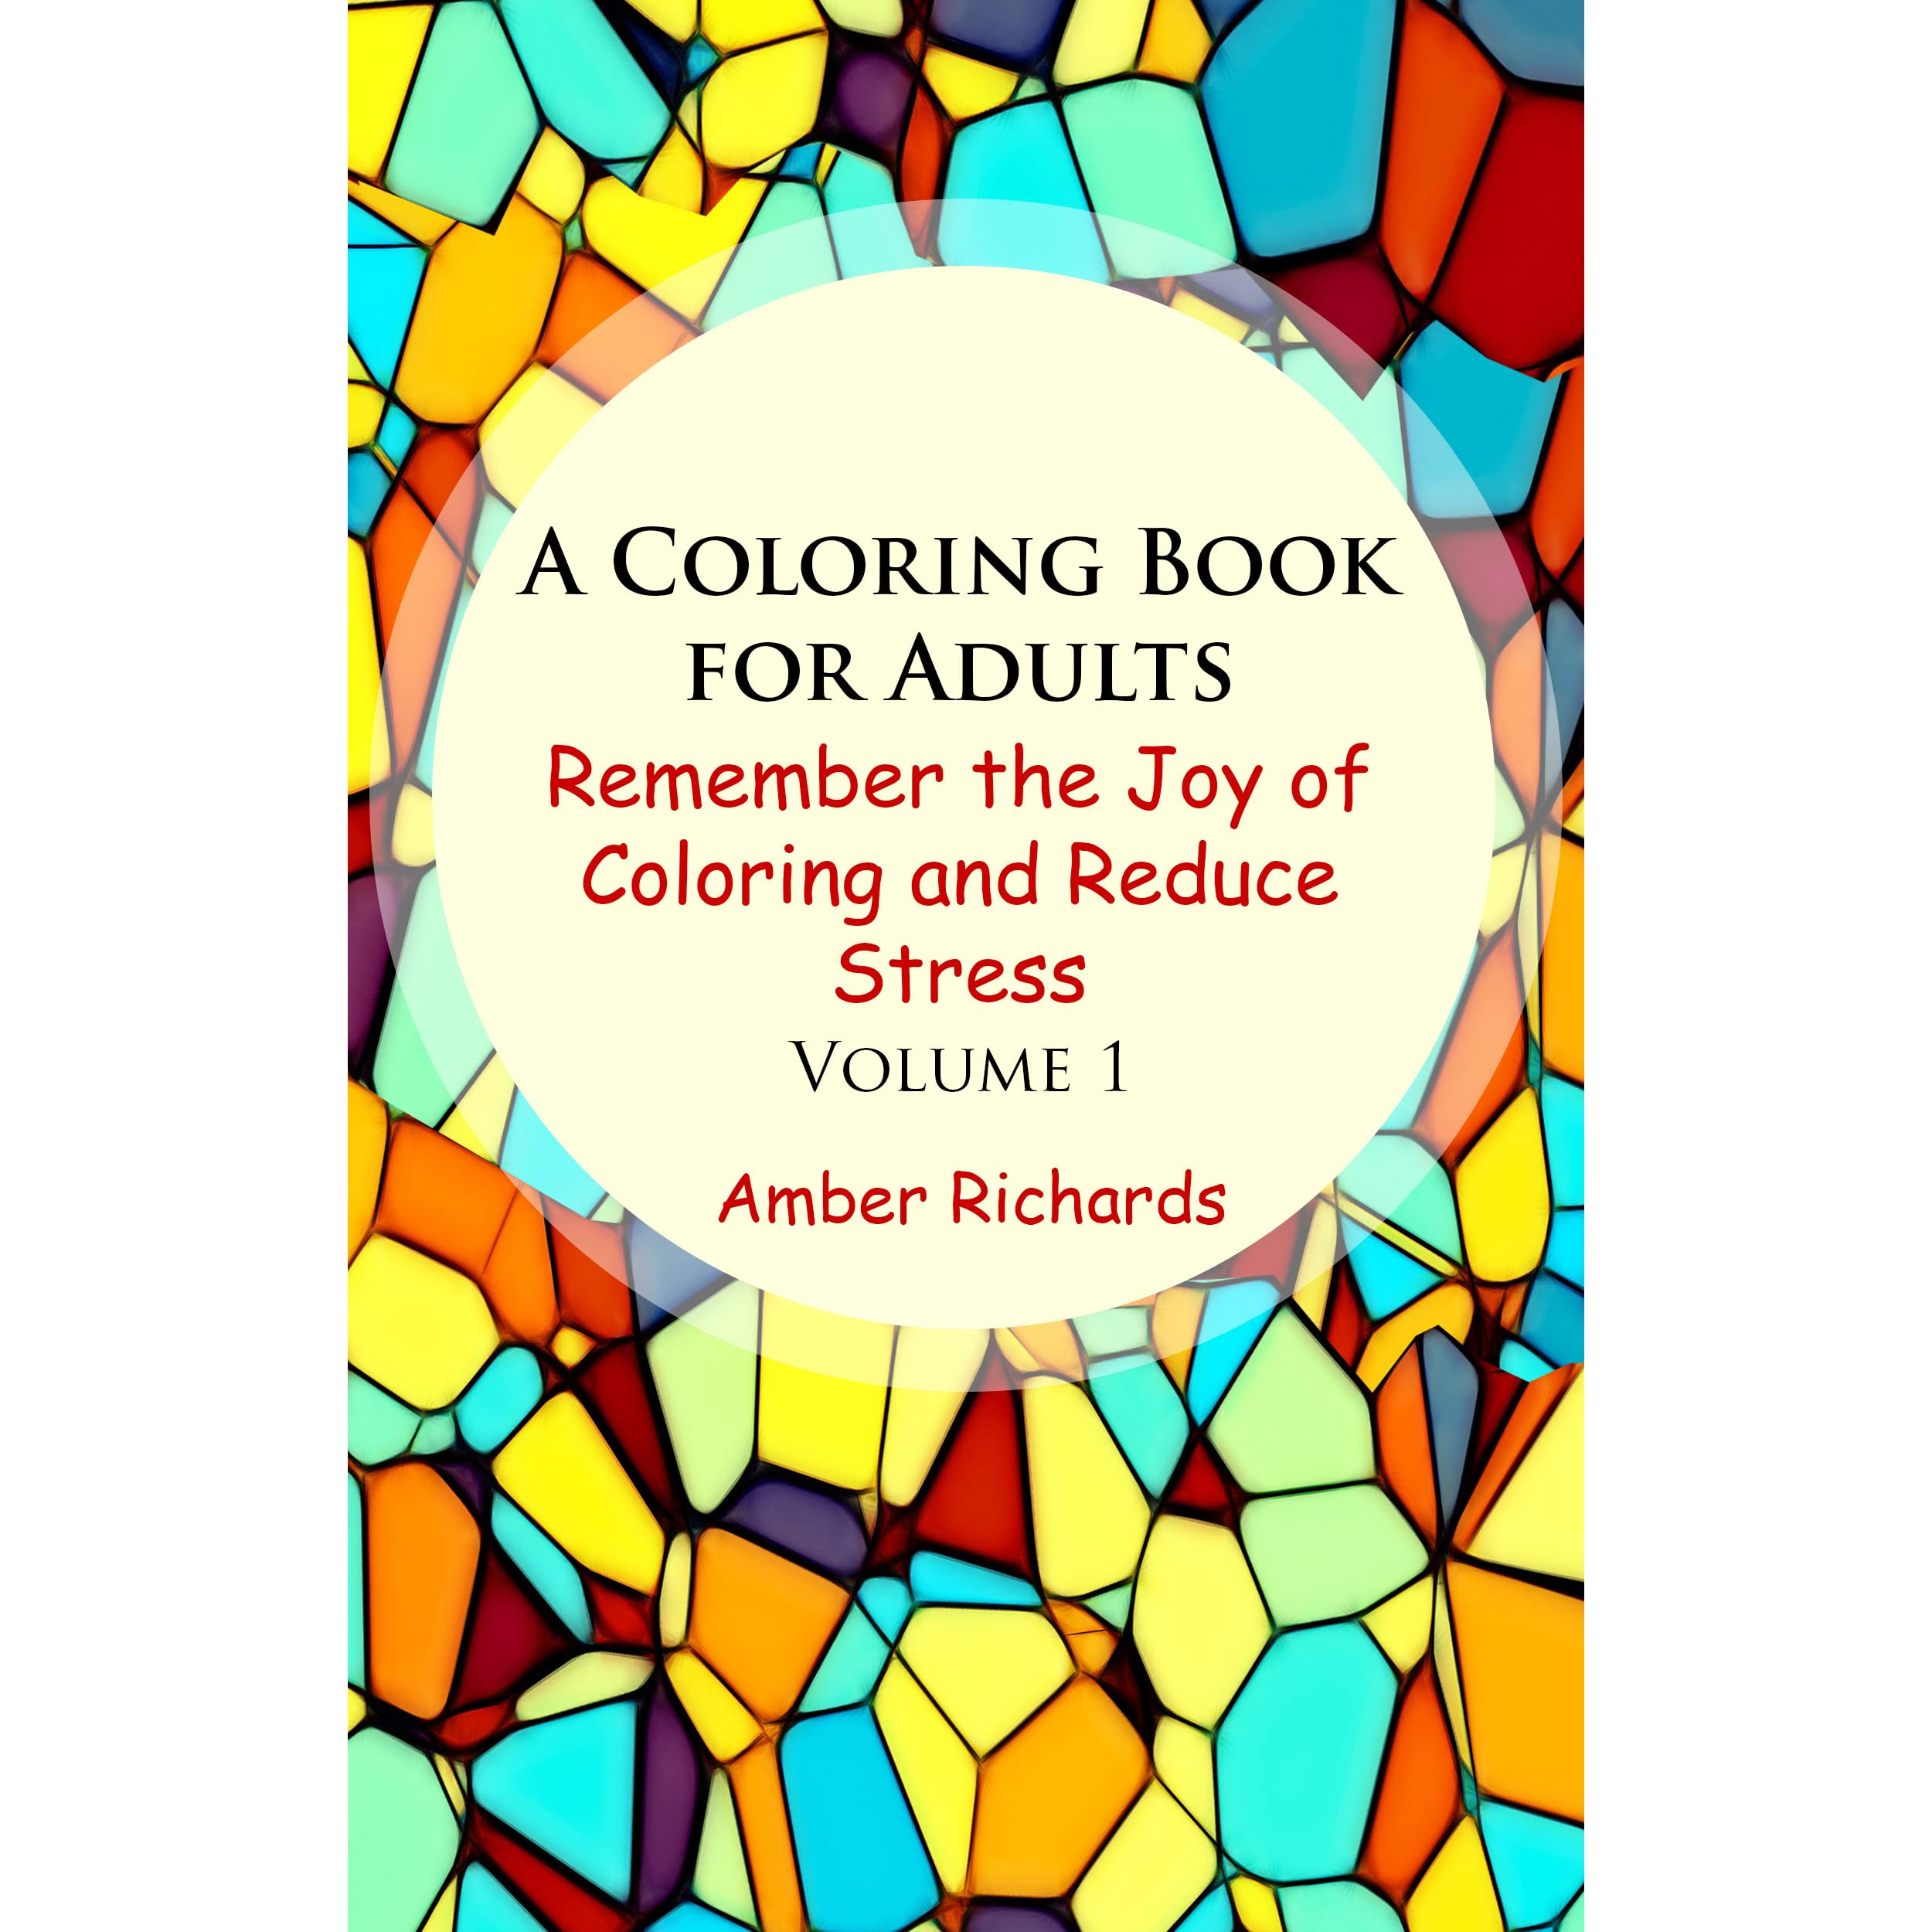 A Coloring Book For Adults Remember The Joy Of Coloring And Reduce Stress Volume 1 By Amber